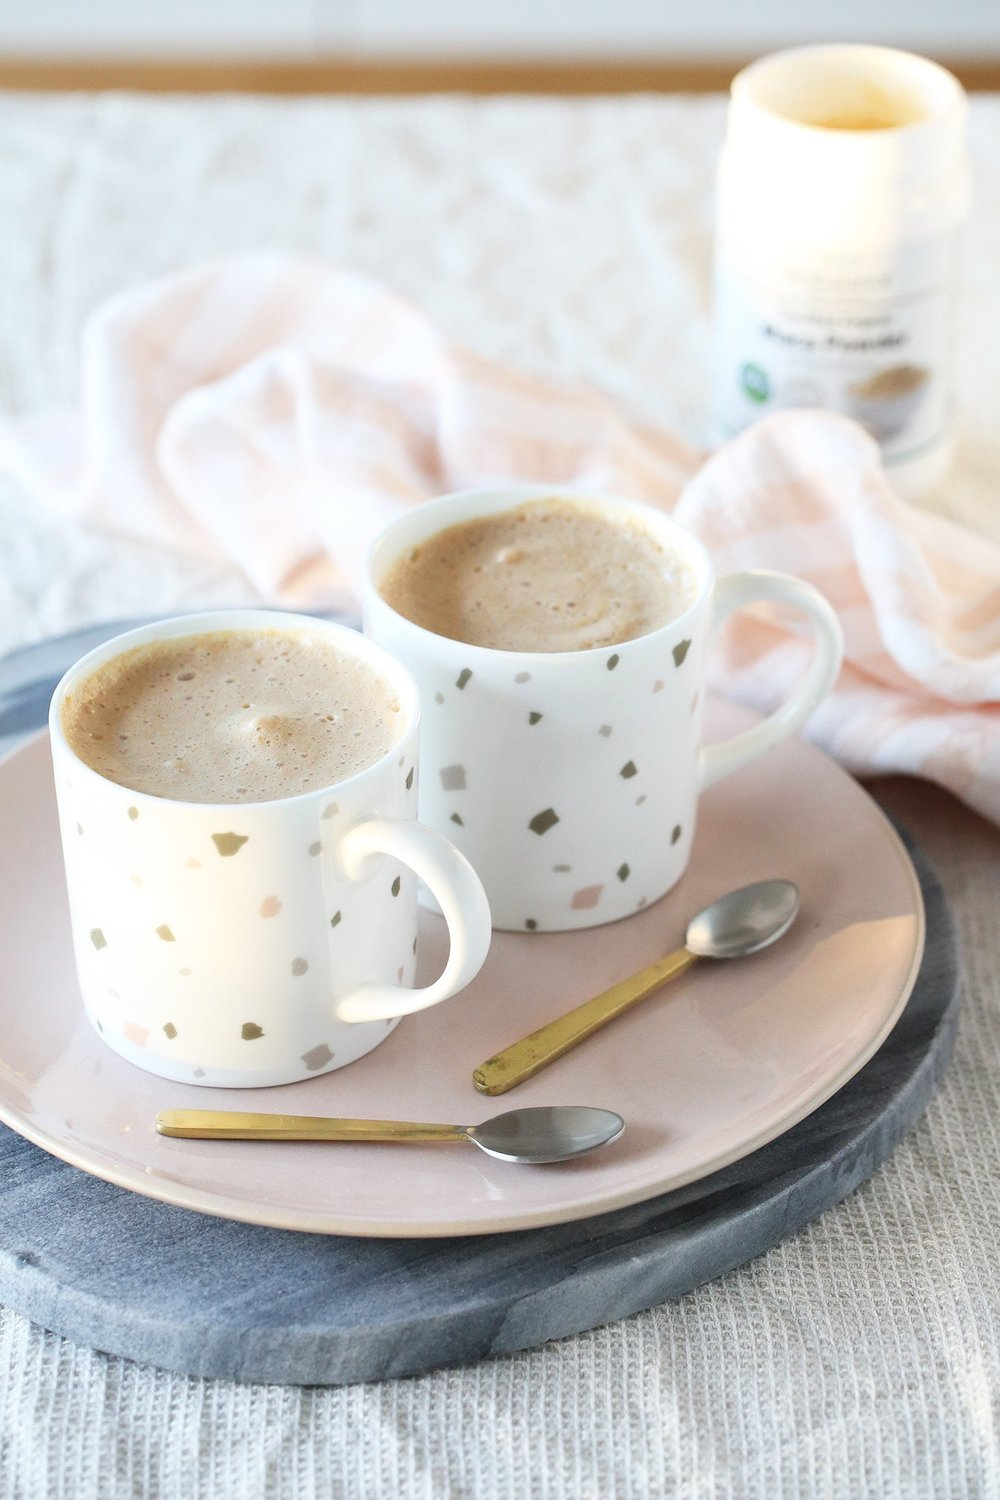 CARAMEL_MACA_LATTE_-_healthy_plant_based_vegan_dairy_free_refined_sugar_free_low_sugar_dates_maca_hormonal_balance_nature_s_viagra_winter_hot_drinks_recipe_begoodorganics_9_2048x2048.jpg